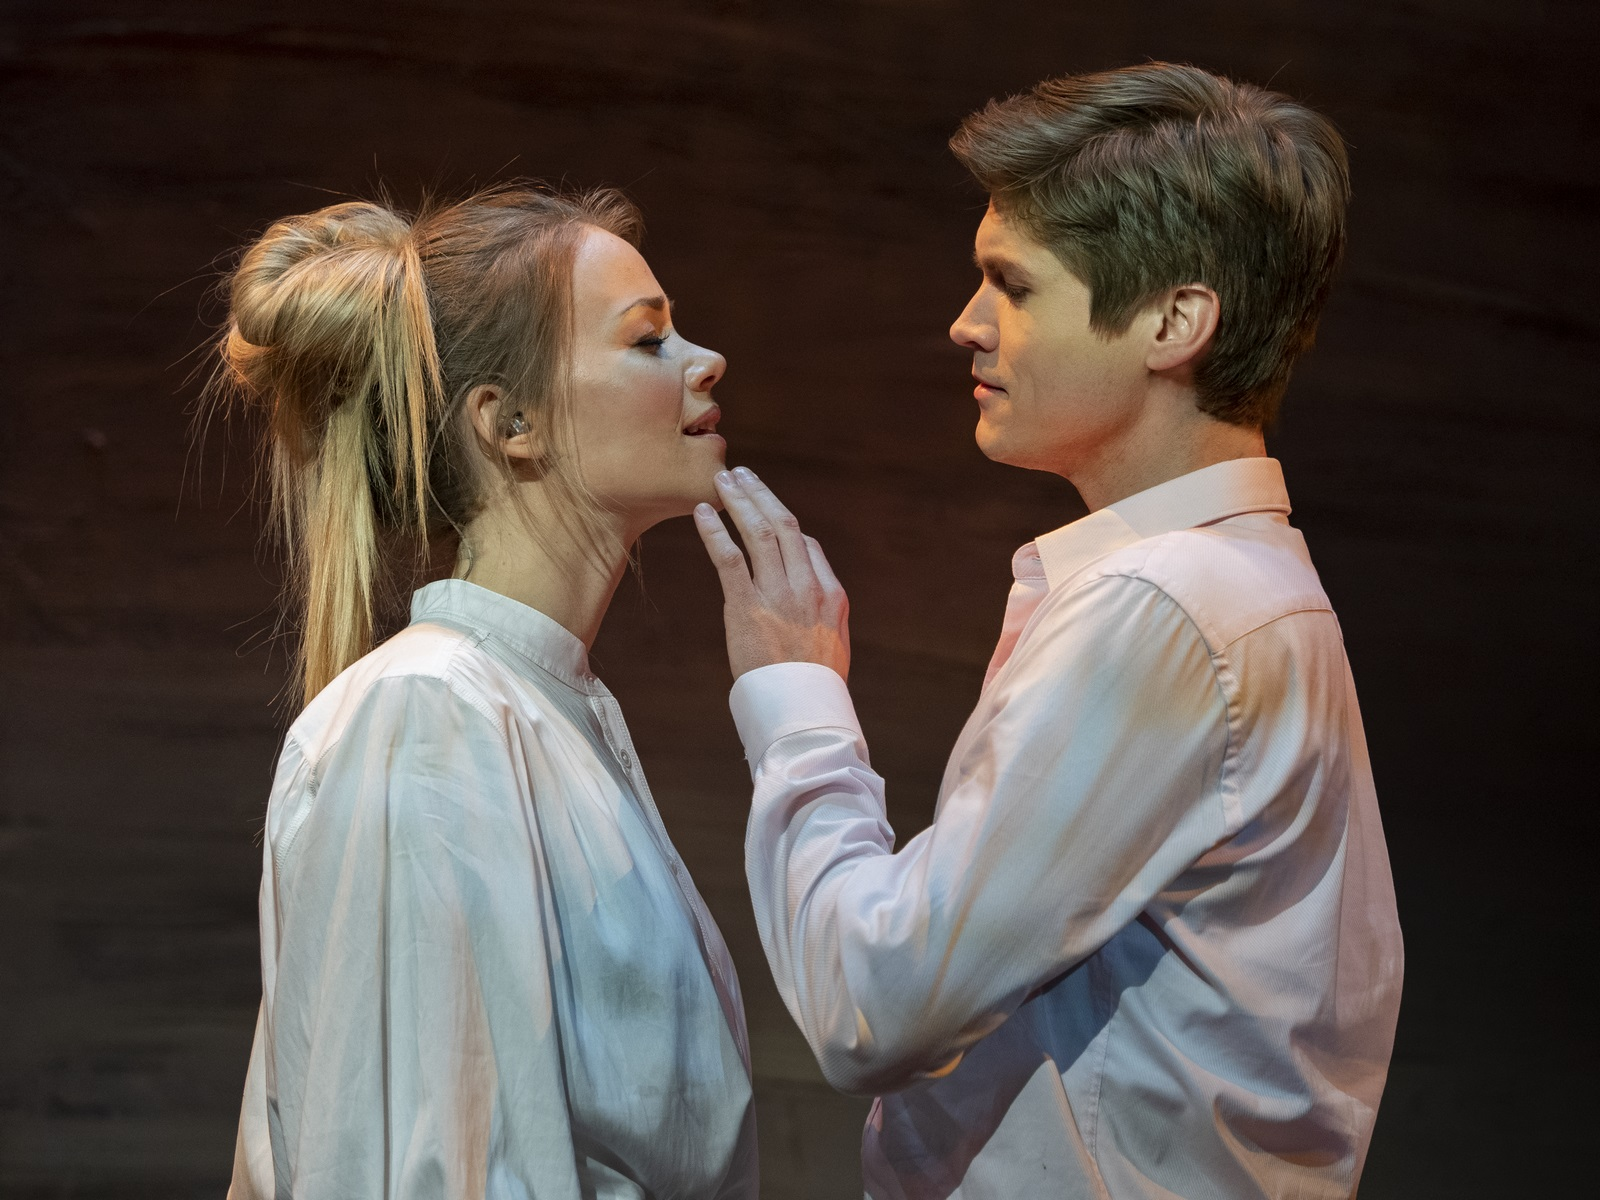 Anmeldelse: GHOST – The musical, Heltemus Productions ApS